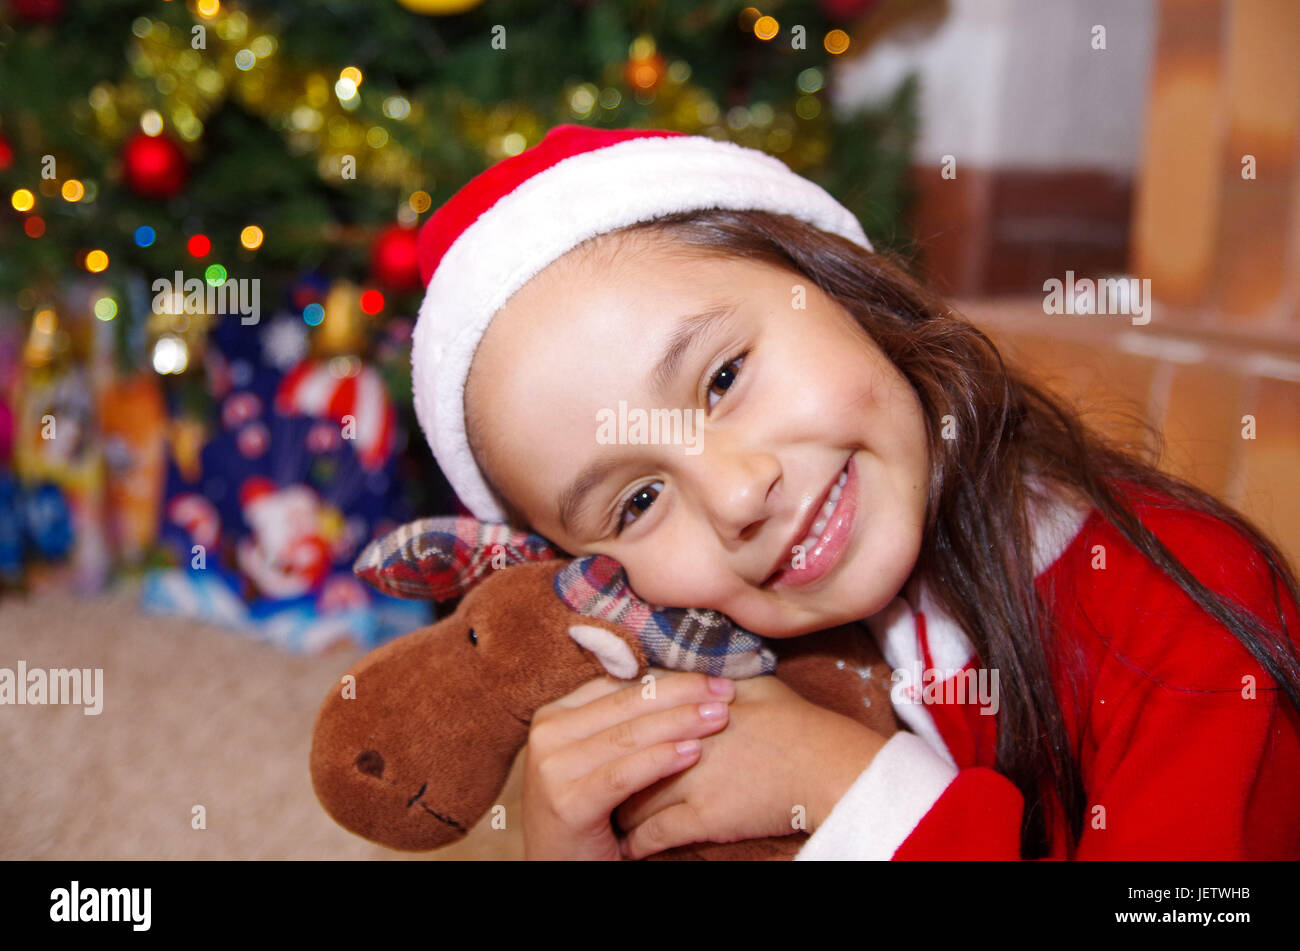 Beautiful Smiling Litle Girl Wearing A Christmas Clothes Hugging Moose Teddy With Tree Background Some Presents